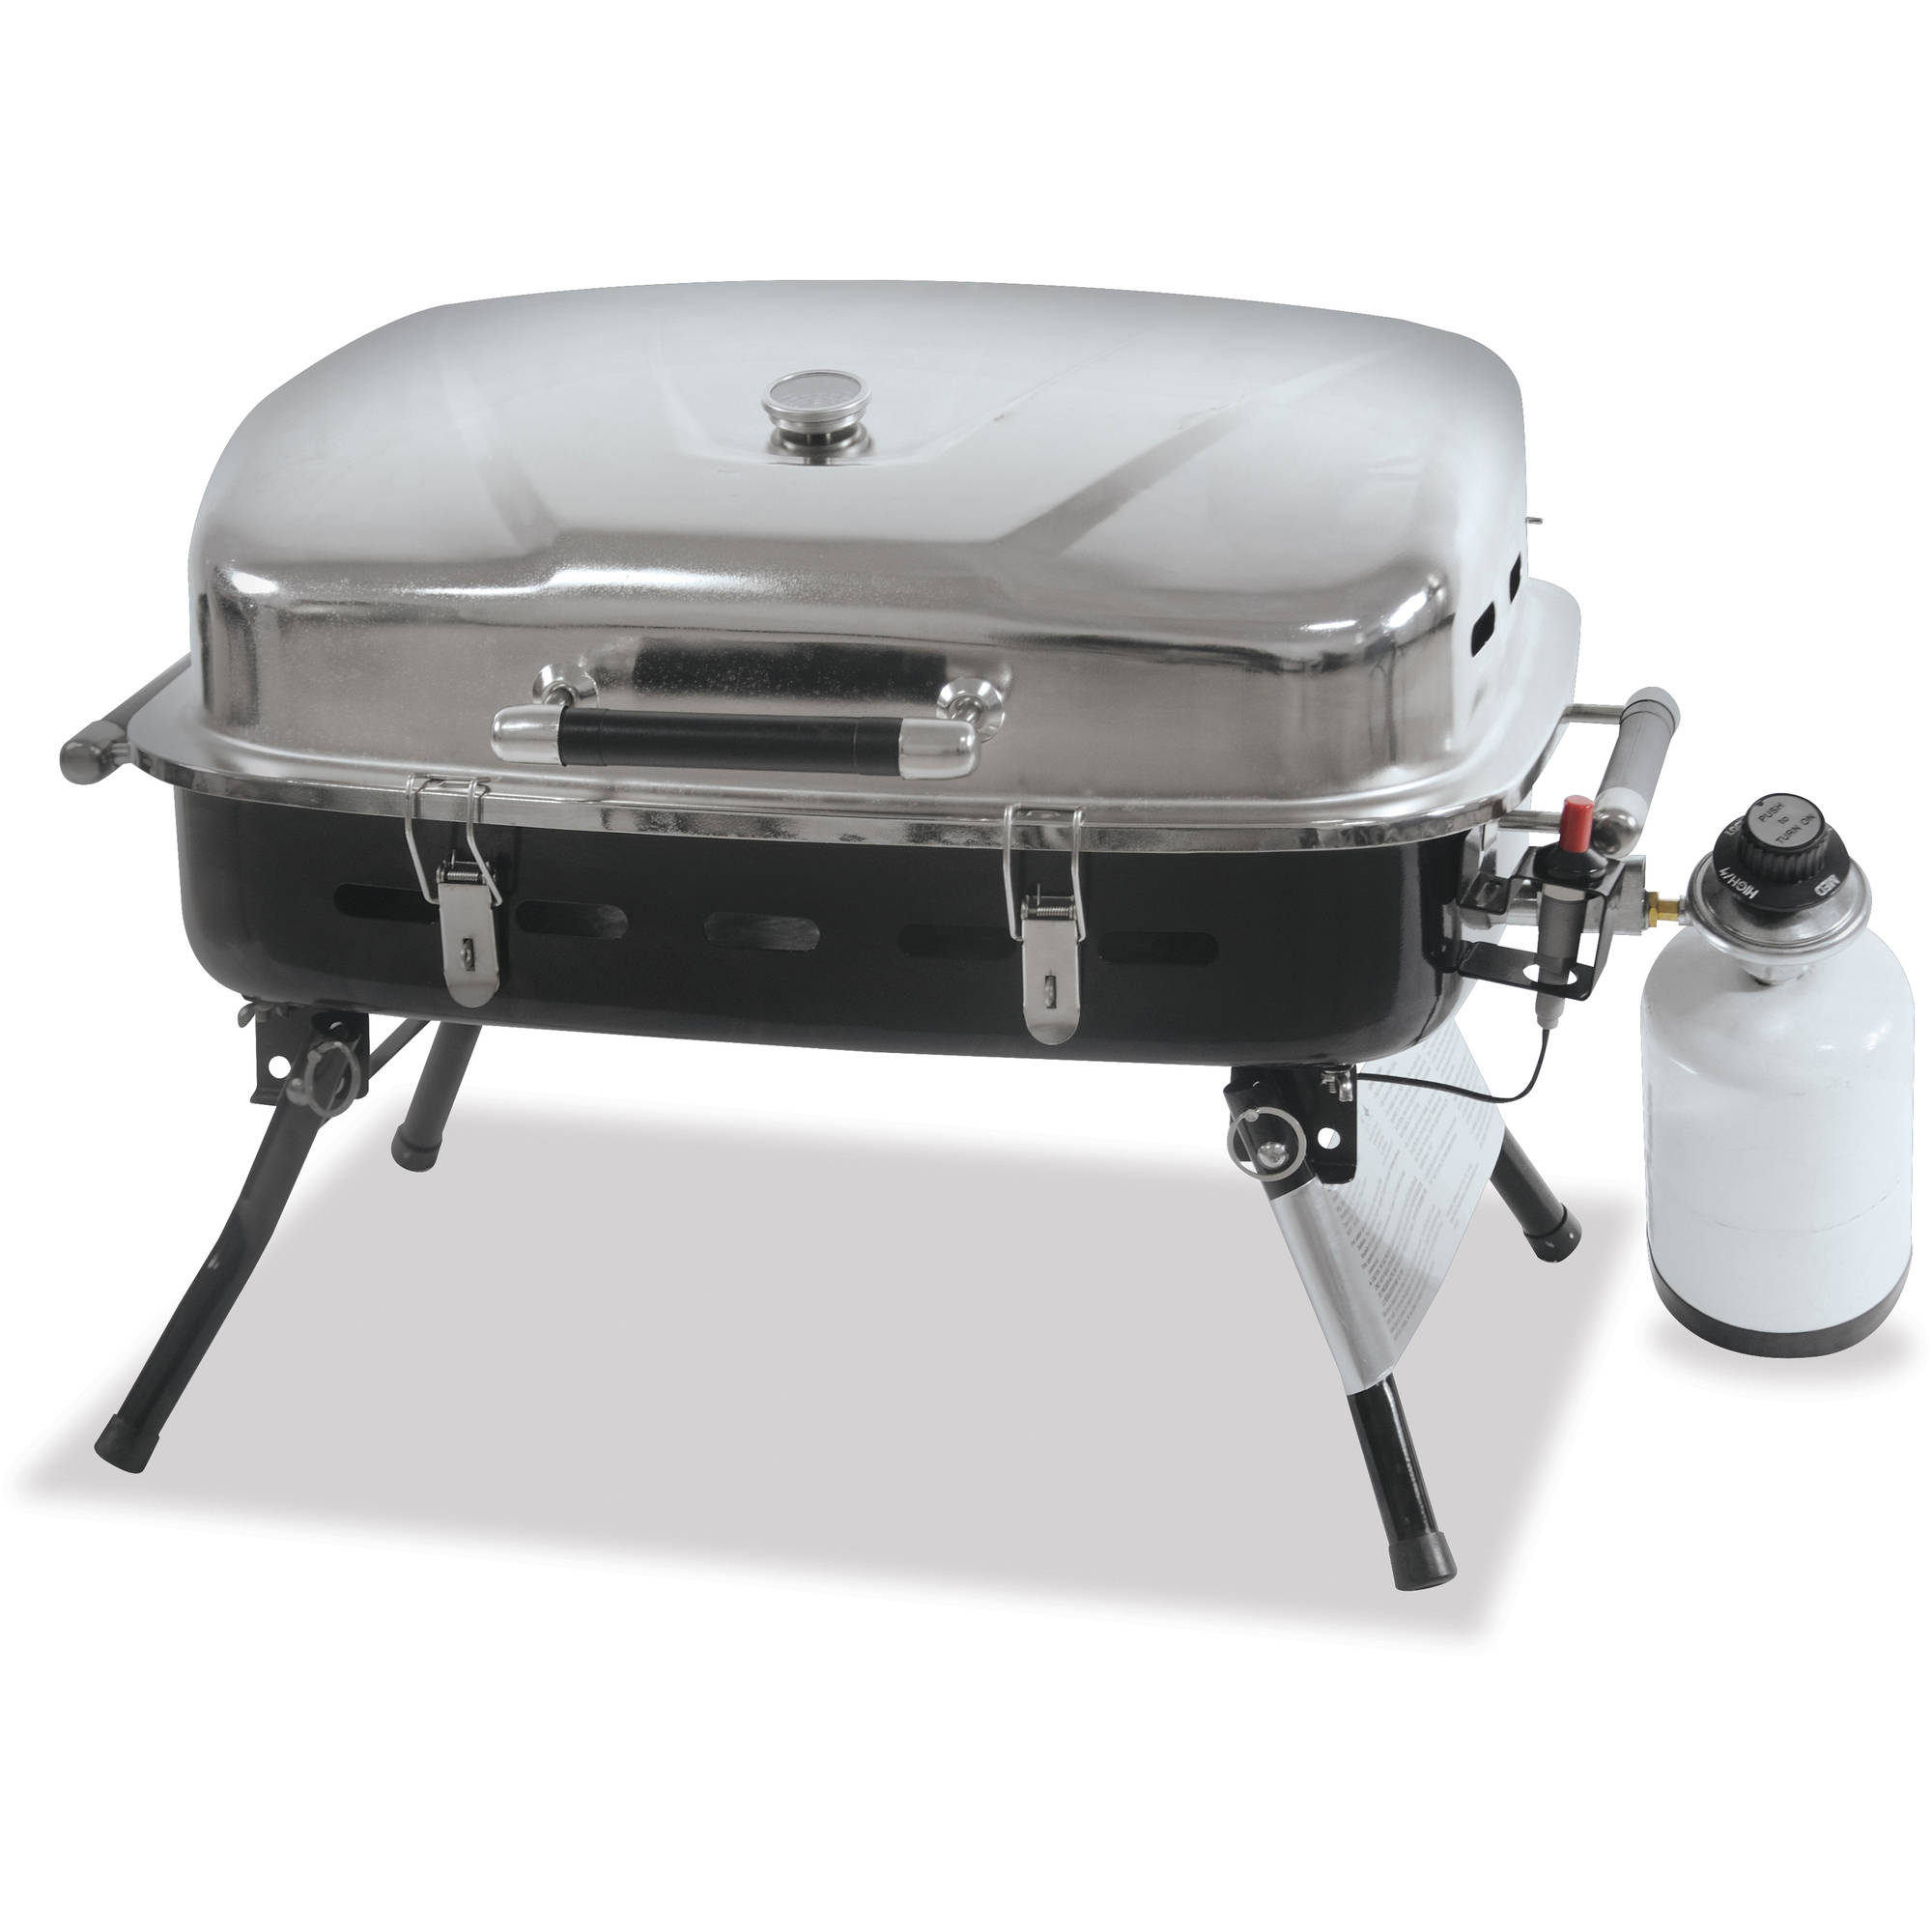 UniFlame NPG2302SS Gas Grill 3 Sq. ft. Cooking Area 1 Cooking Elements by Blue Rhino